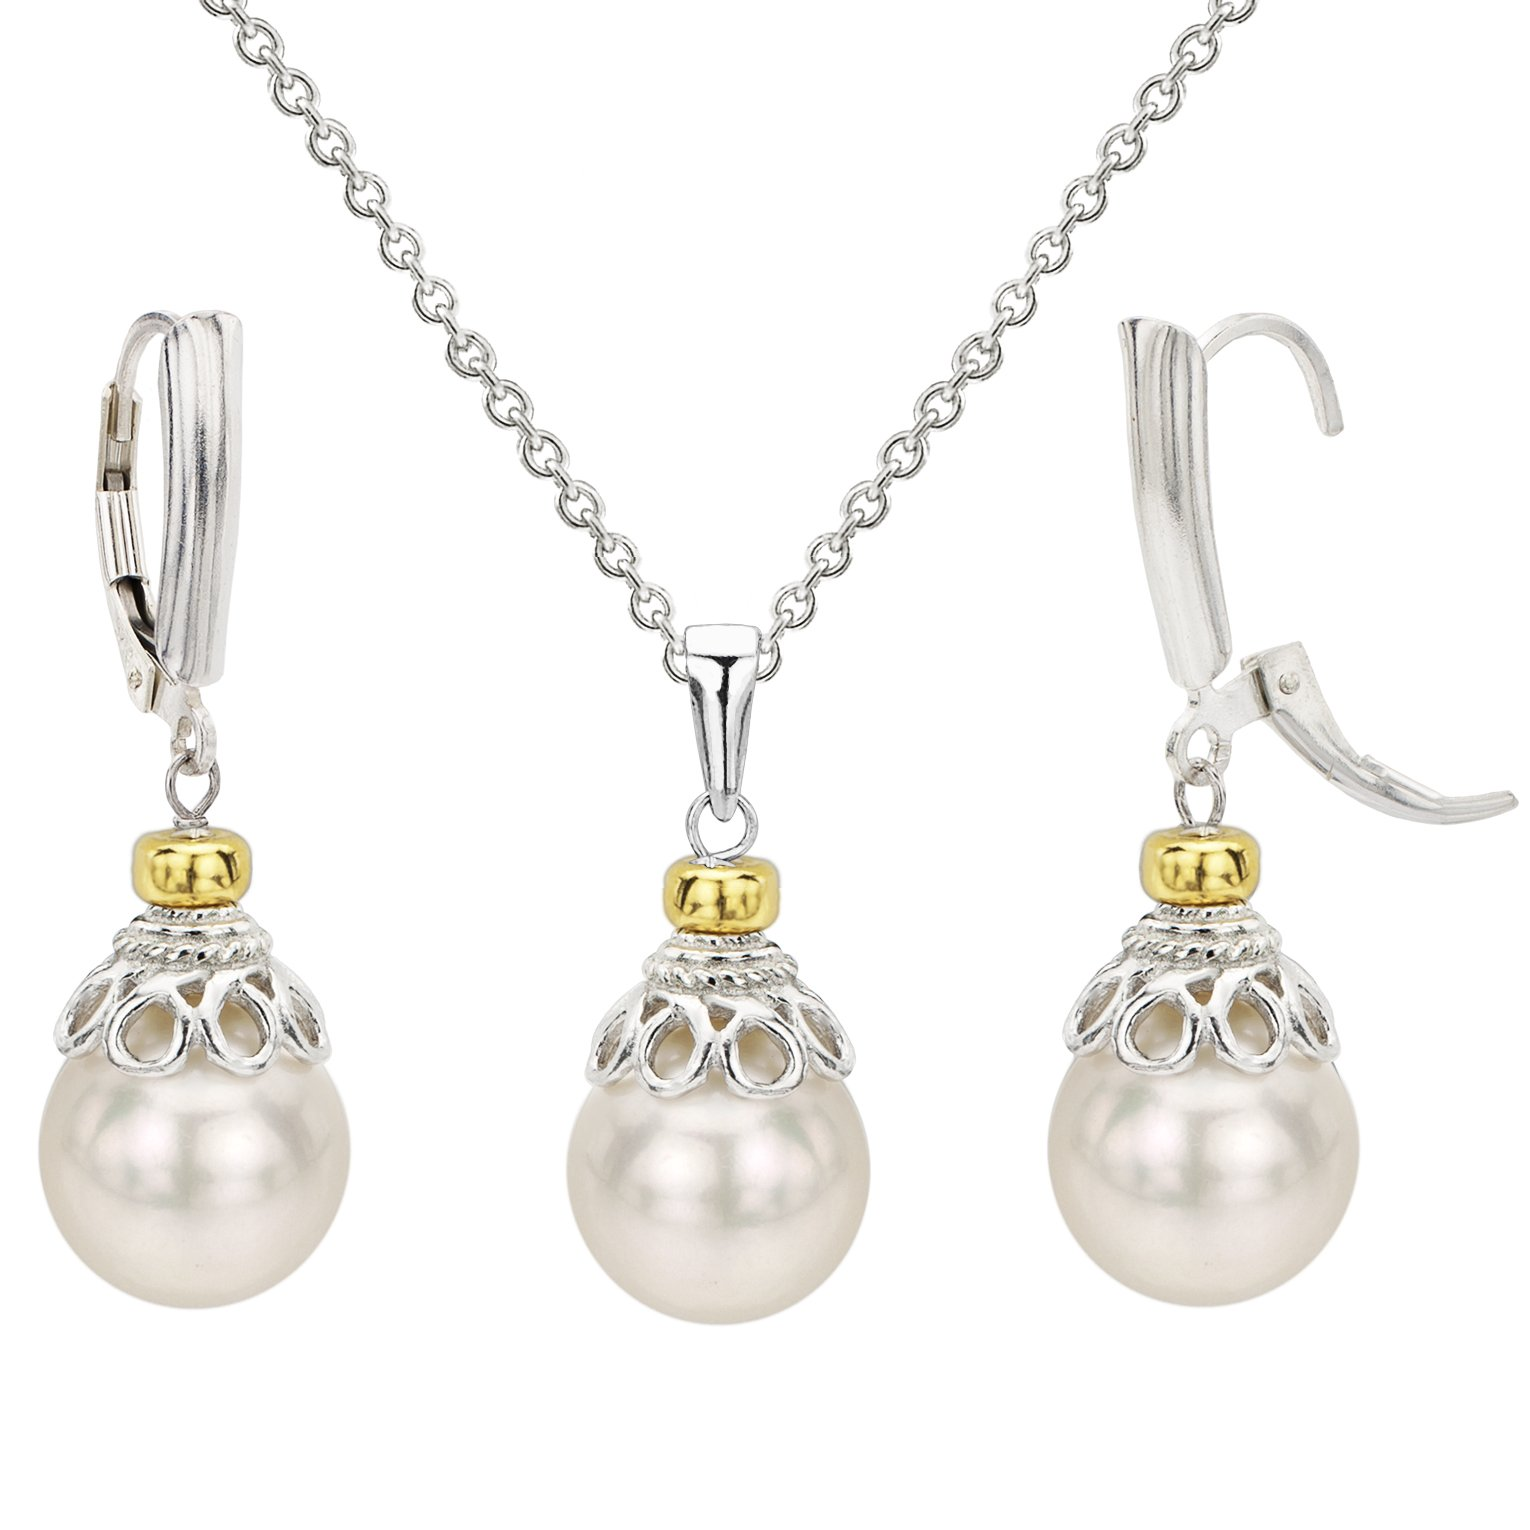 Sterling Silver 10-10.5mm White Freshwater Cultured Pearl Pendant Chain and Lever-back Earrings Set